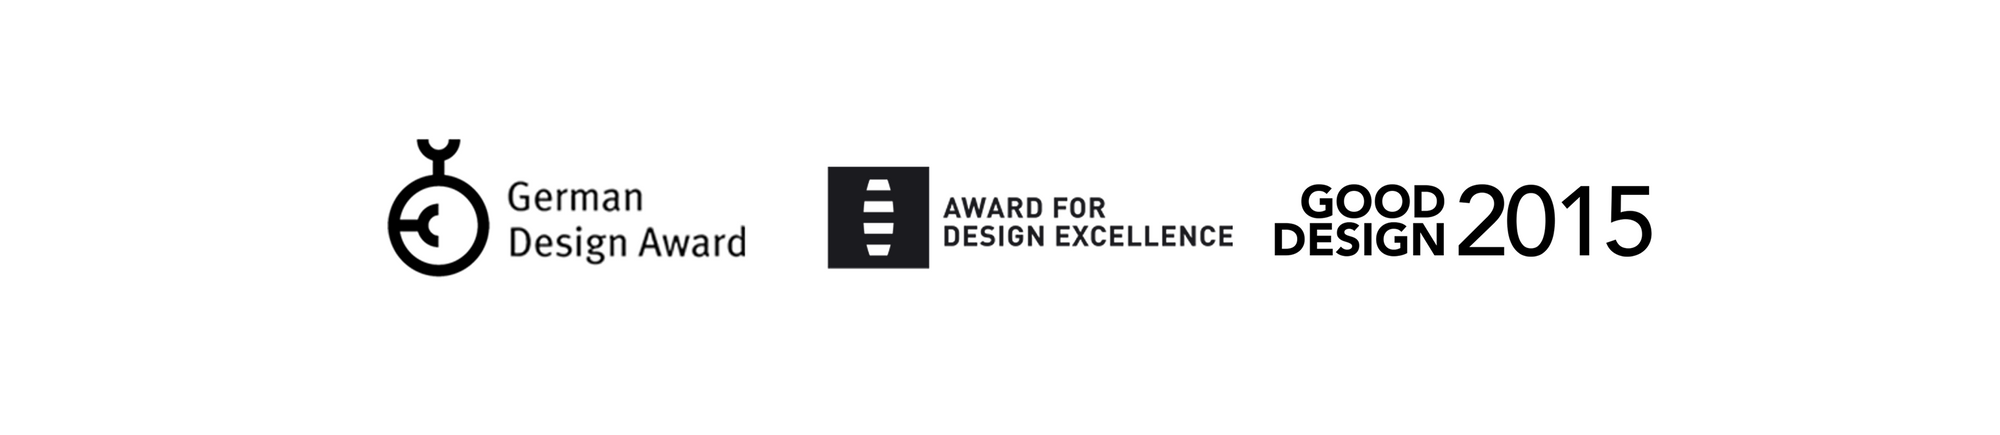 Subwing design awards banner